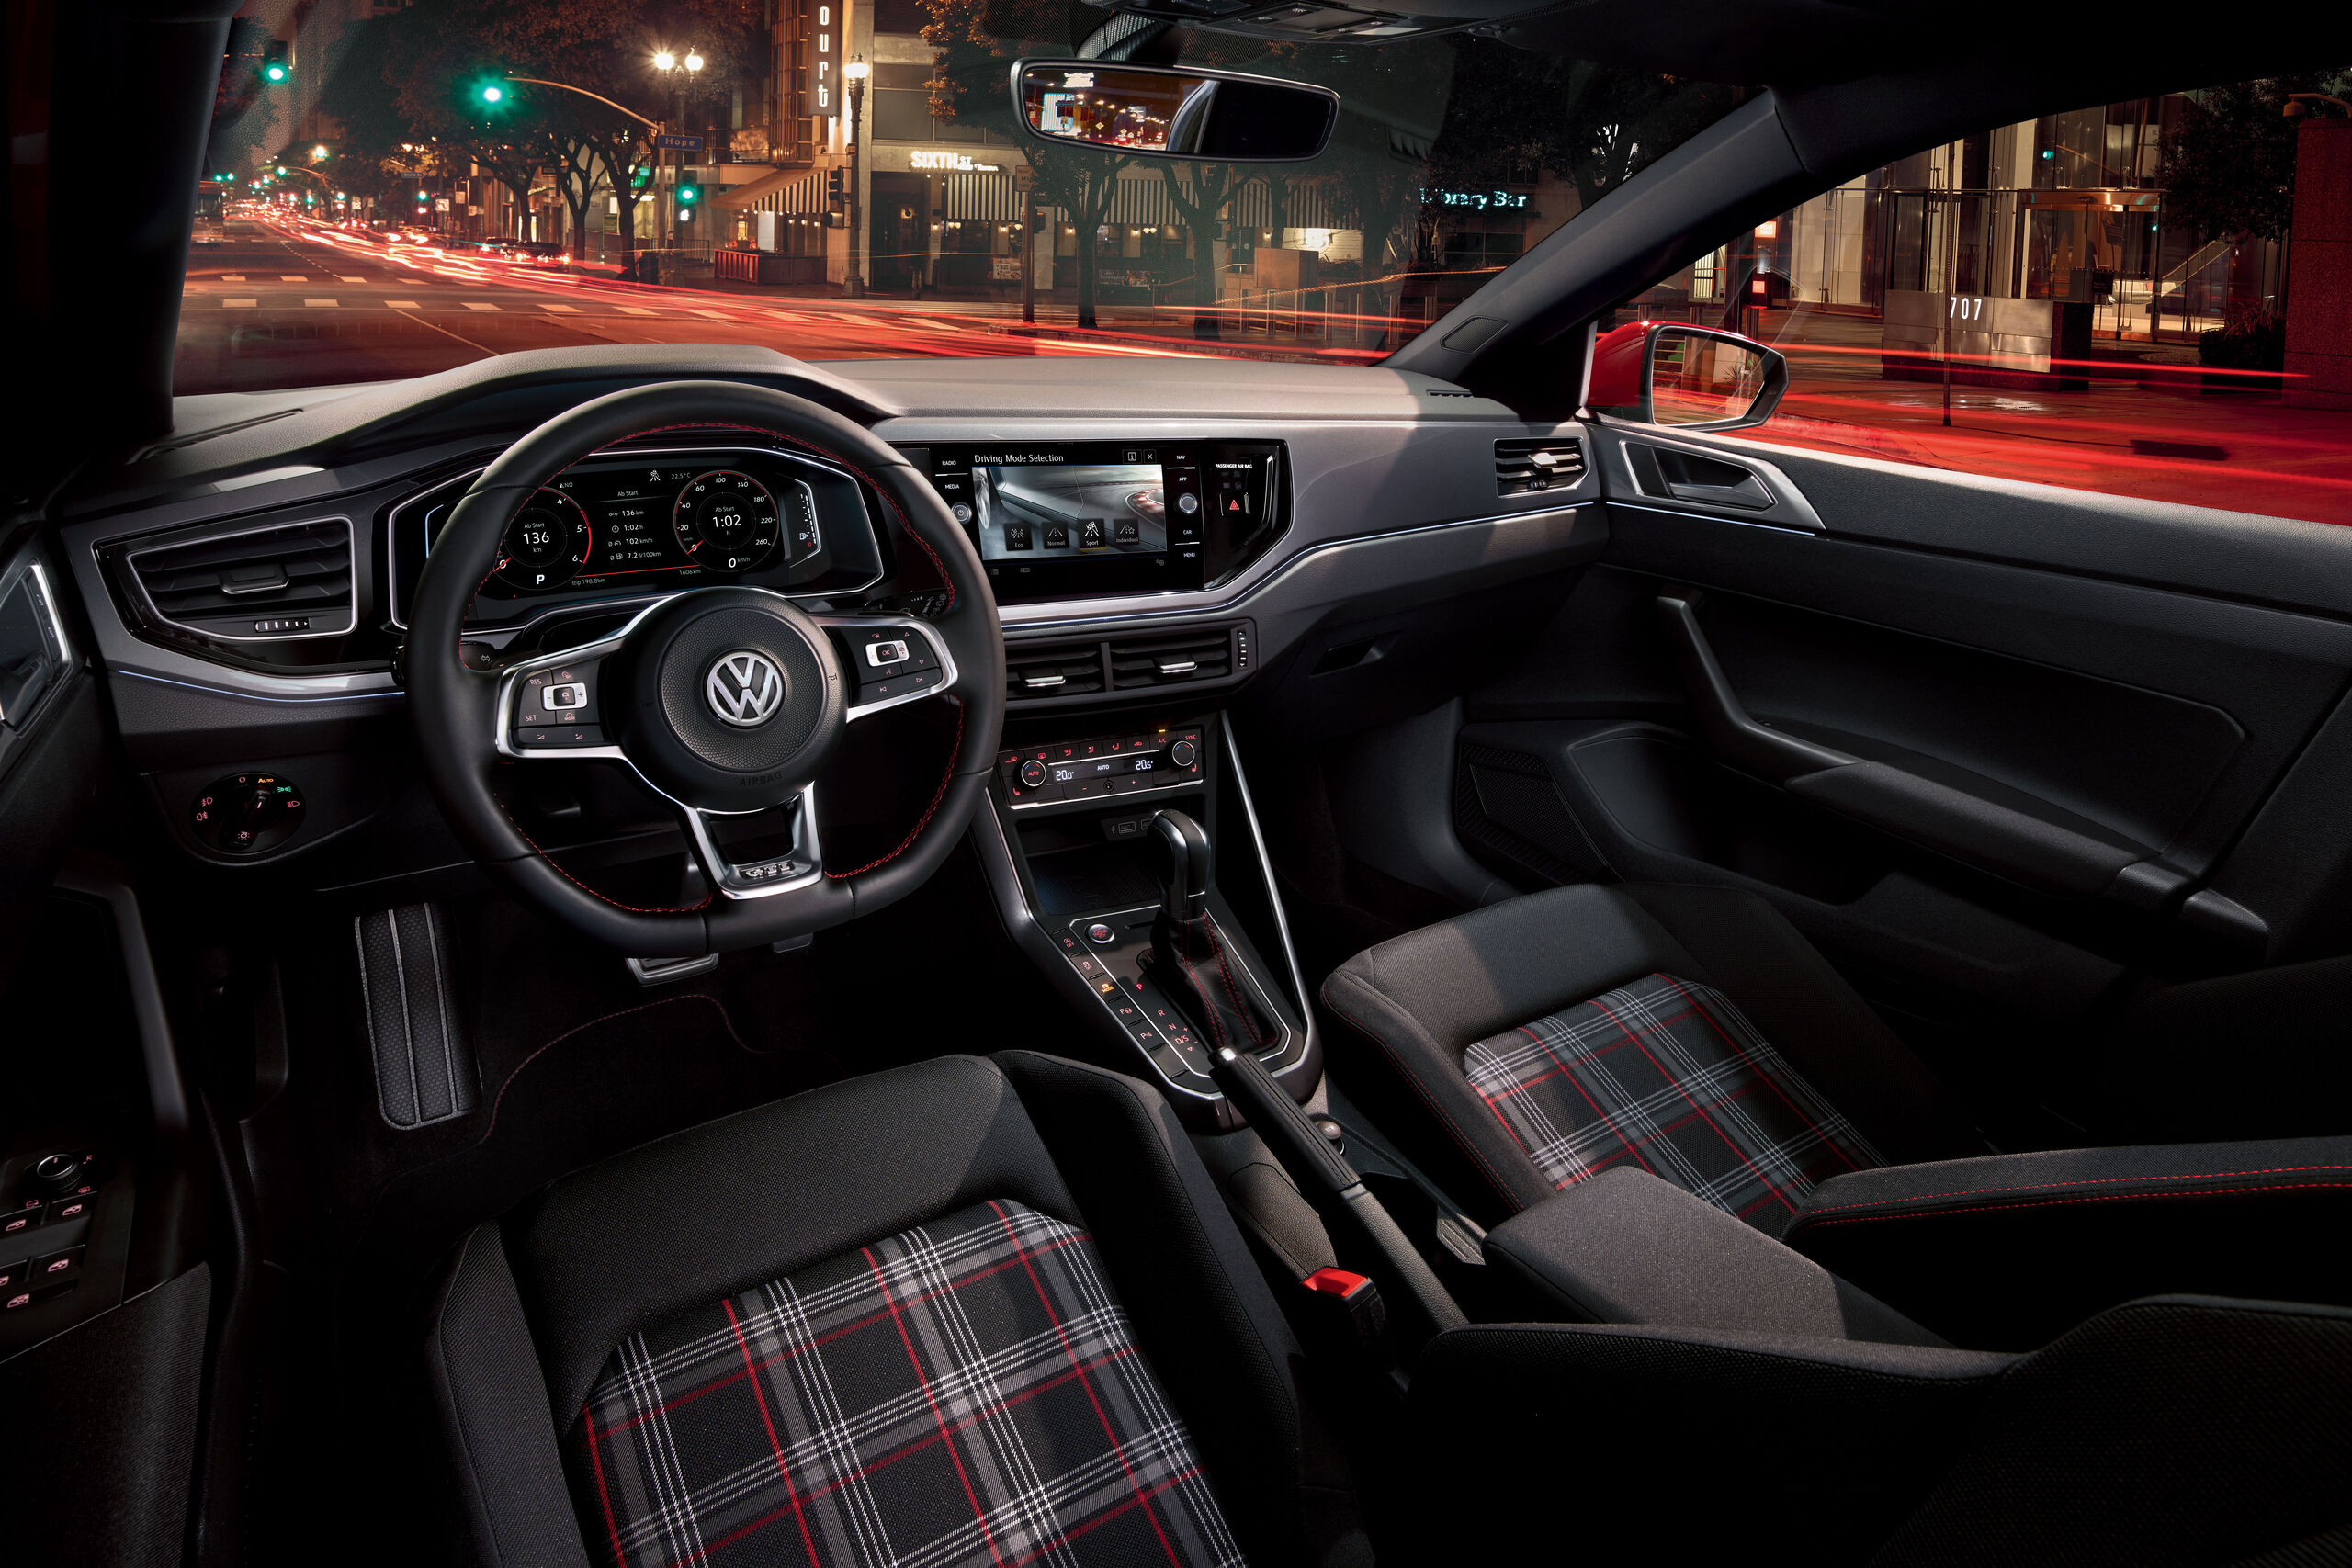 vw volkswagen polo gti interior